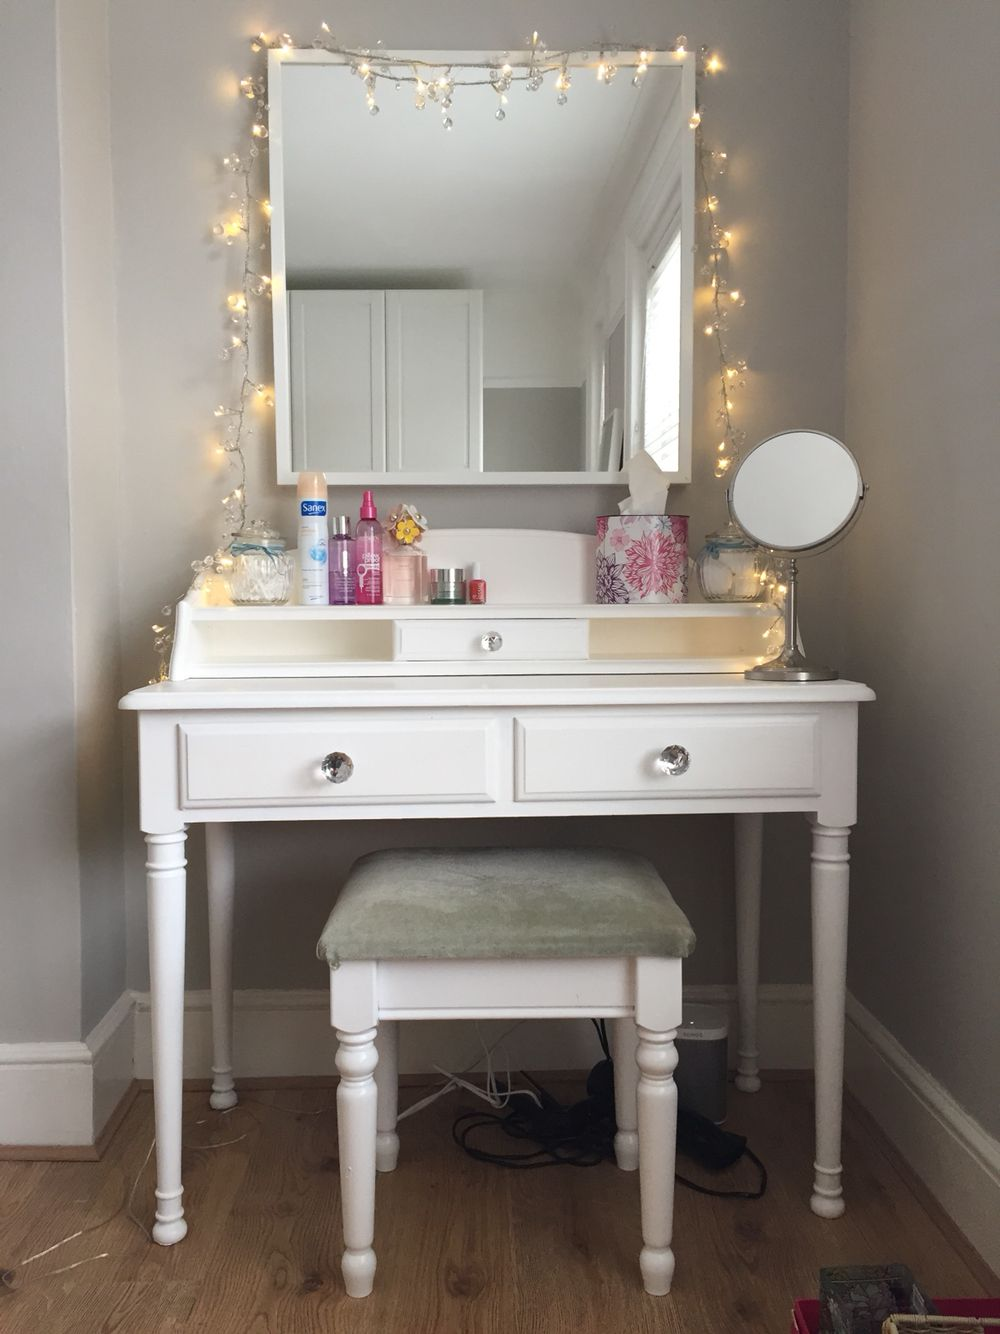 Bedroom fairy lights ikea - My Line Dressing Table Up Cycled Ikea Mirror And Some Fairy Lights Job Done